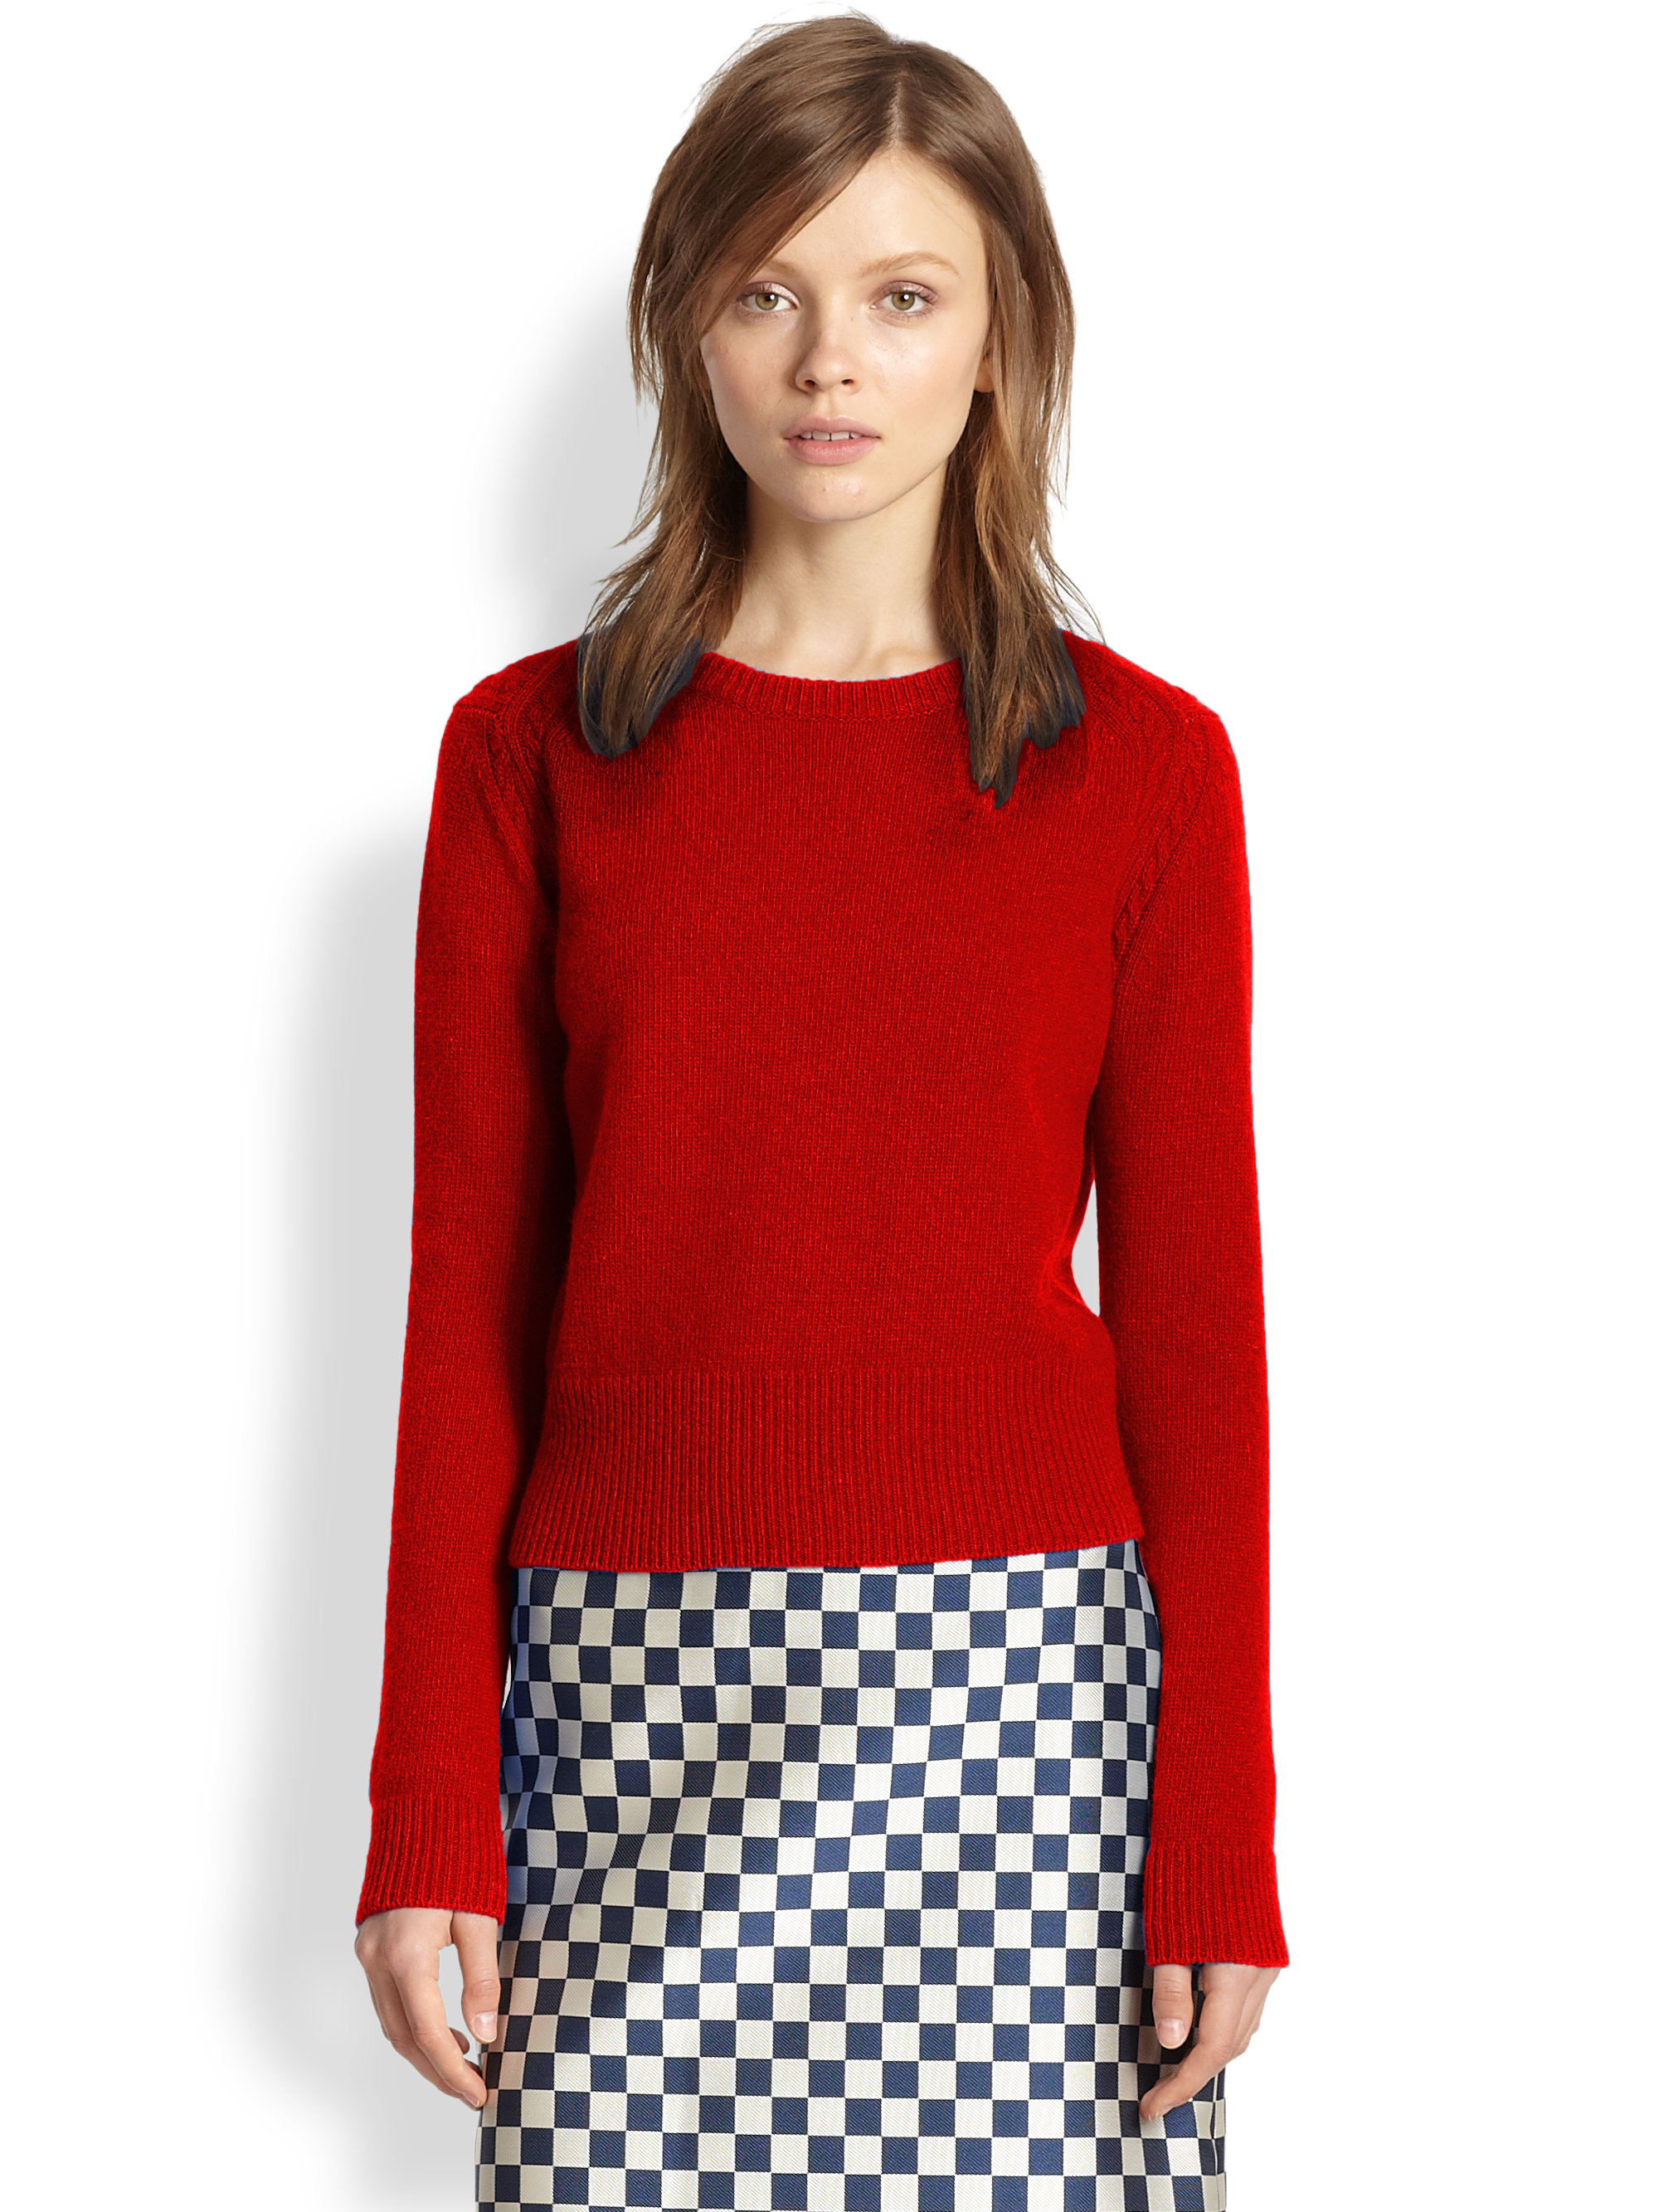 marc by marc jacobs wool sweater in red red pepper lyst. Black Bedroom Furniture Sets. Home Design Ideas